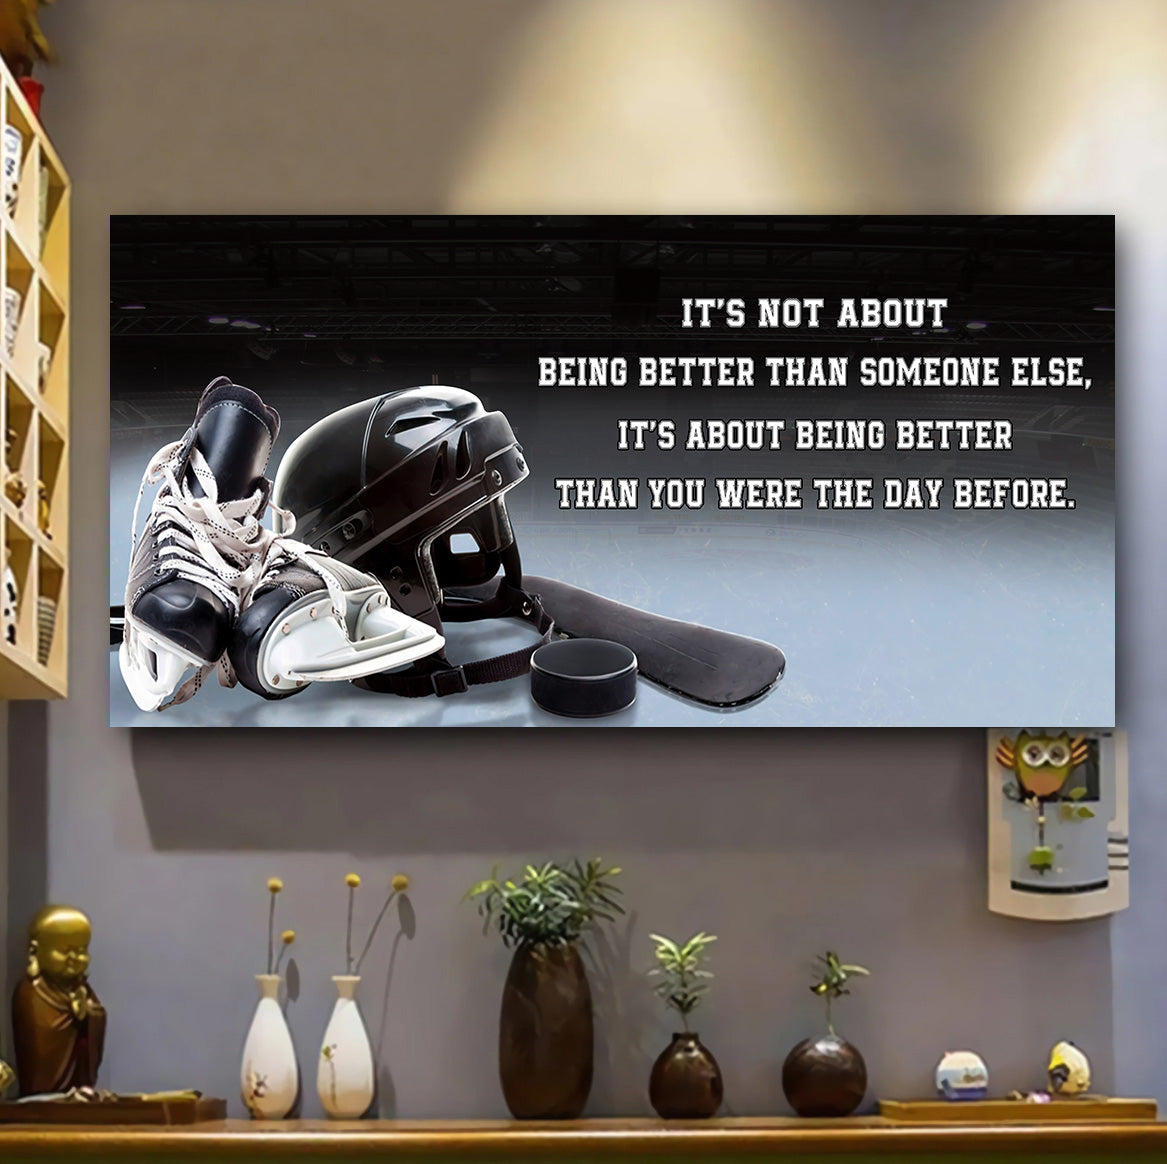 (H798) Customizable Hockey poster - It's not about better  - FREE SHIPPING ON ORDERS OVER $75